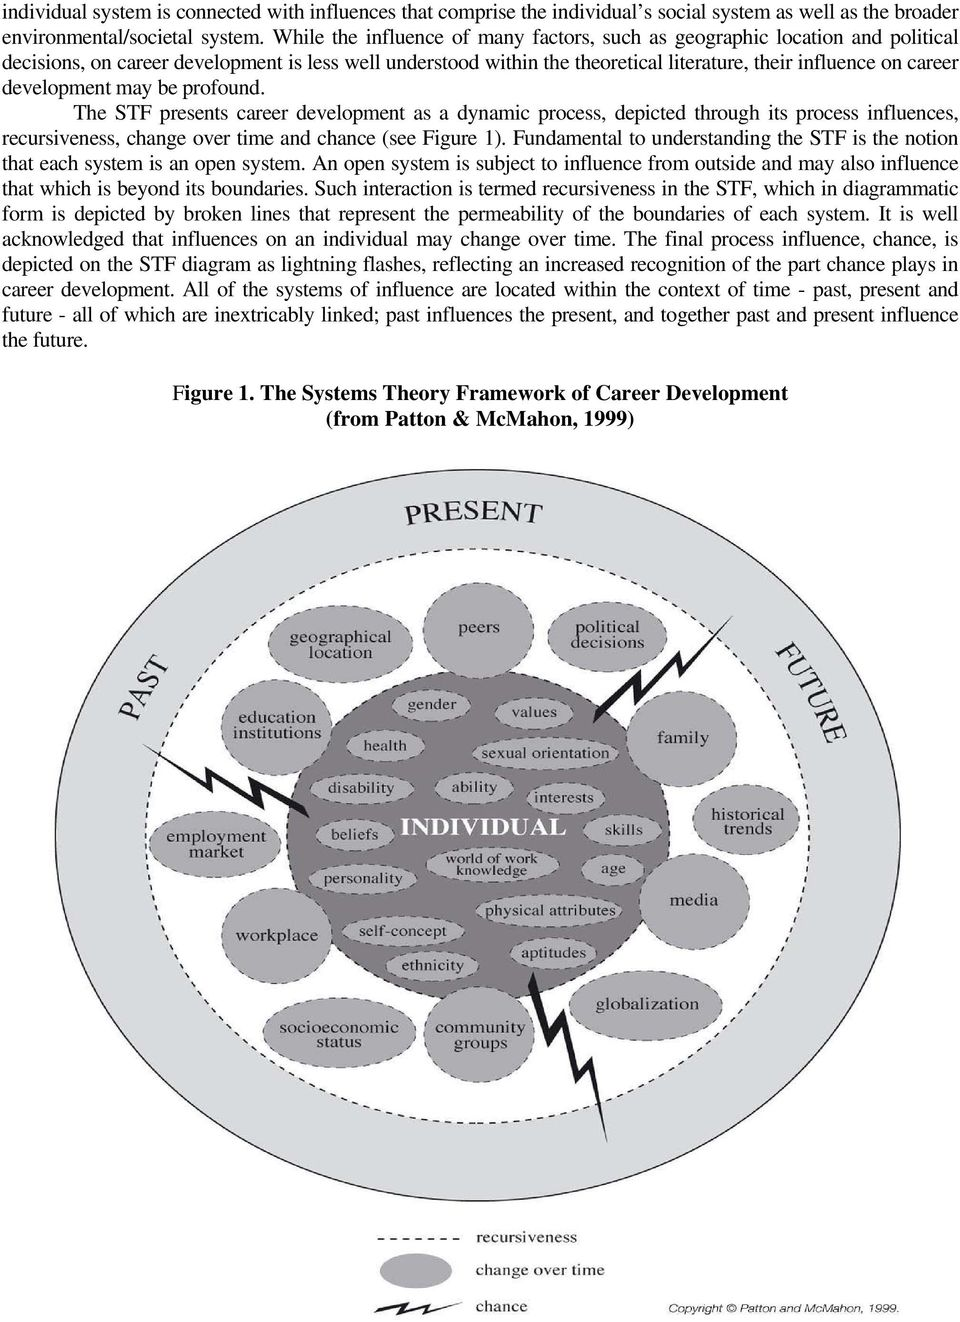 development may be profound. The STF presents career development as a dynamic process, depicted through its process influences, recursiveness, change over time and chance (see Figure 1).